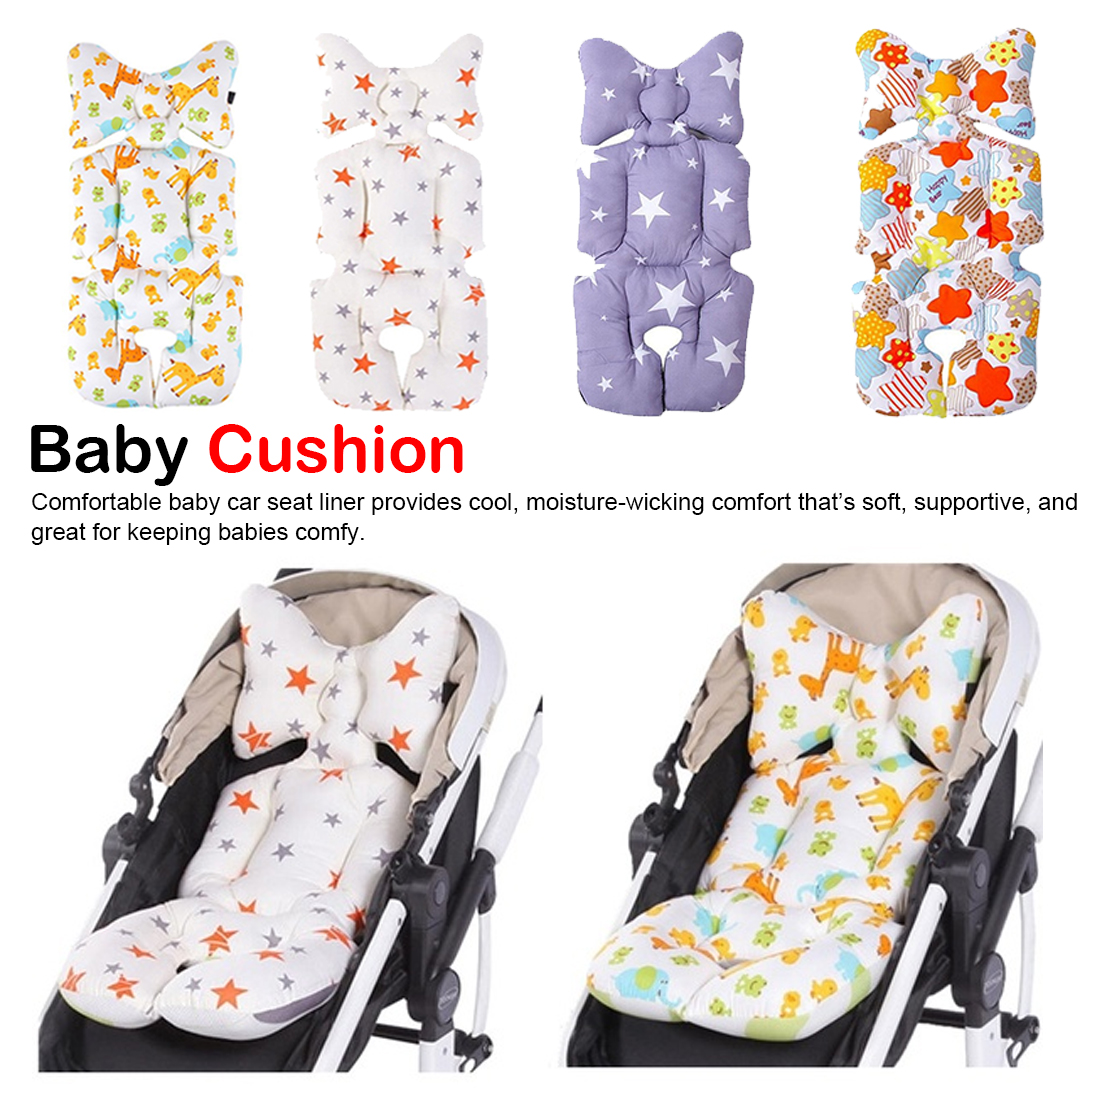 Baby Stroller Accessories Car Seat Thick Cushions 0 8 Year Baby Kids Care High Chair Seat Cushion Pushchair Strollers Pads in Strollers Accessories from Mother Kids